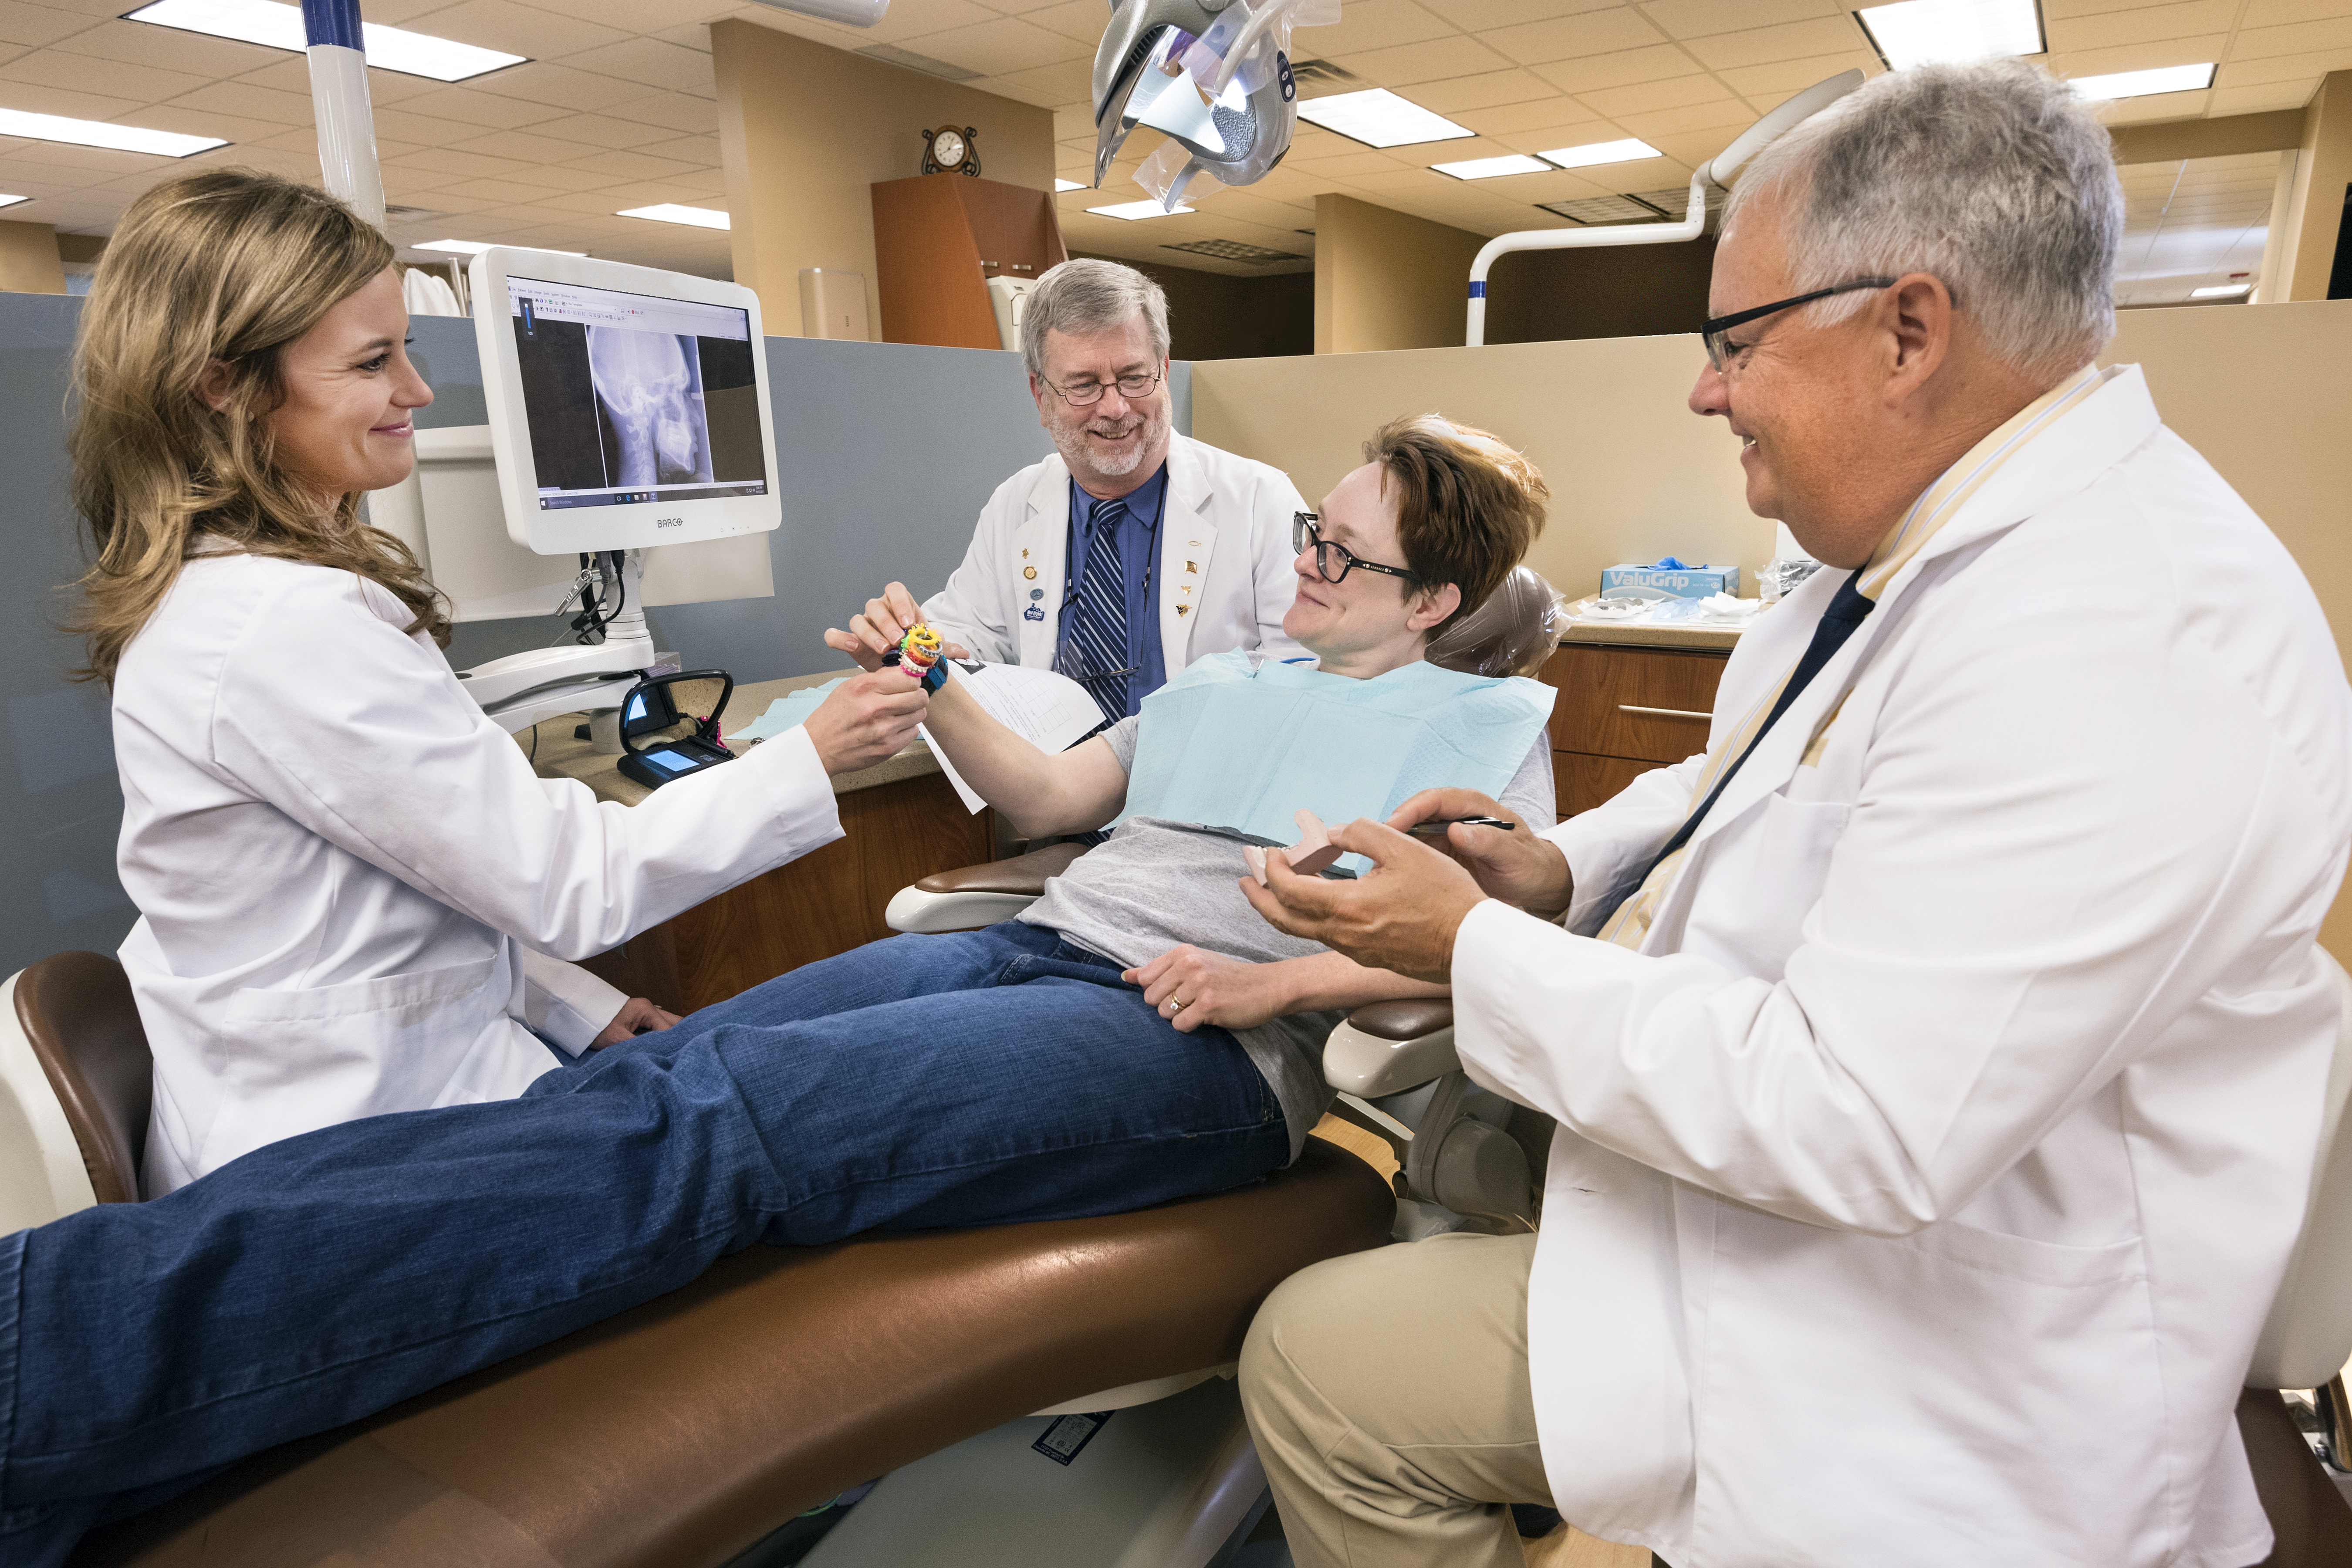 Dental professionals sitting with patient